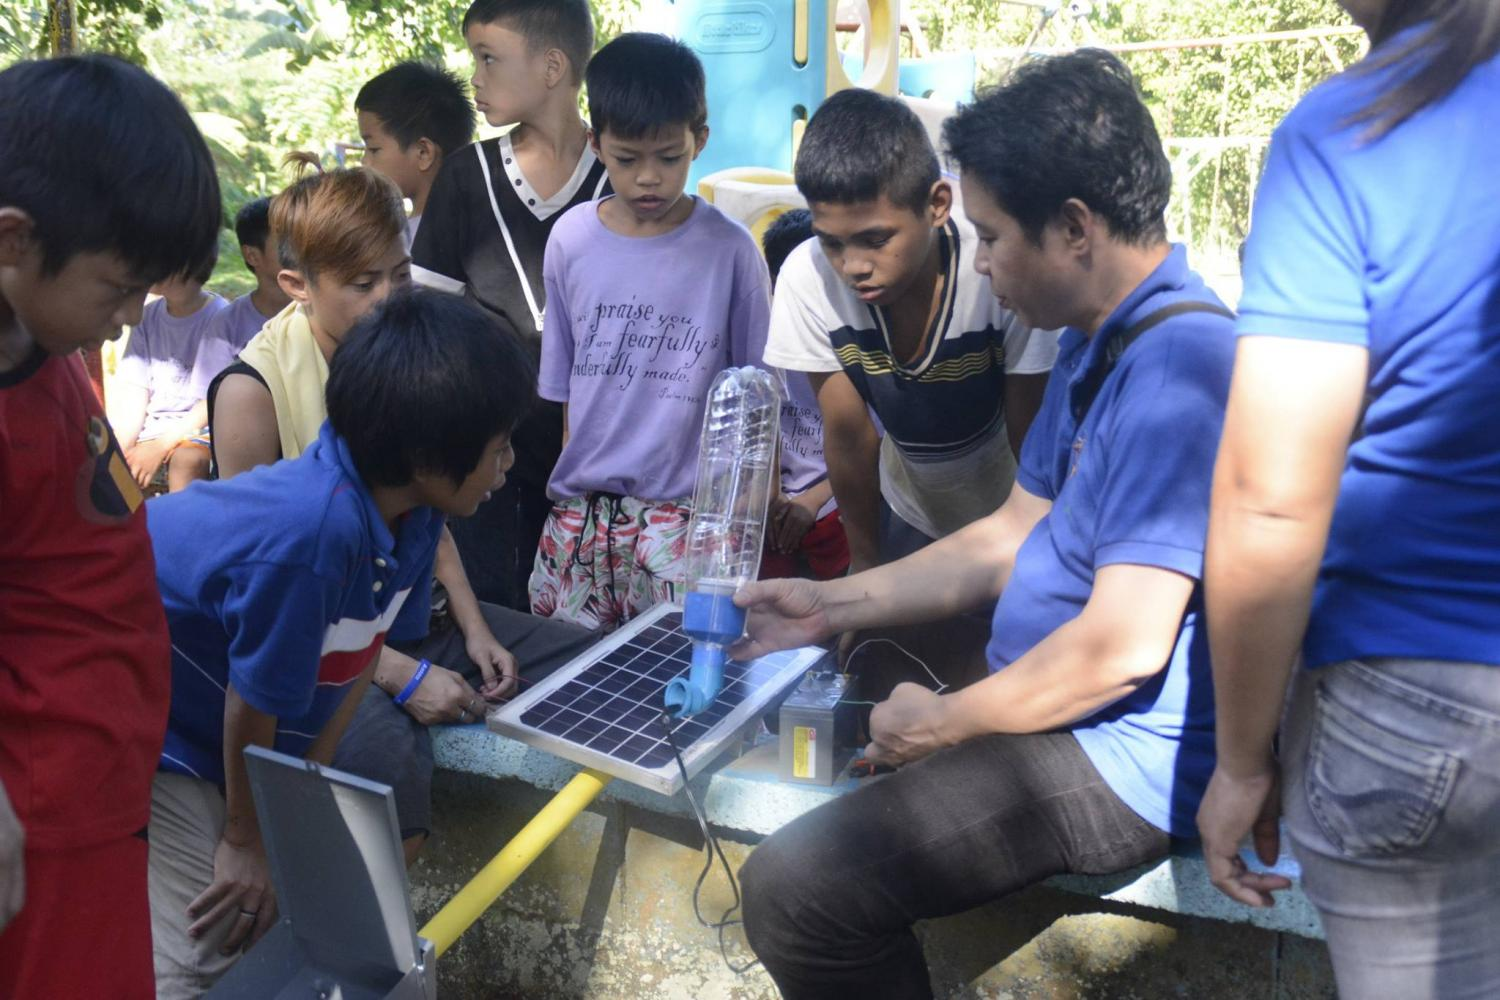 Liter-of-Light-is-now-training-citizens-to-assemble-solar-powered-street-lamps.jpg